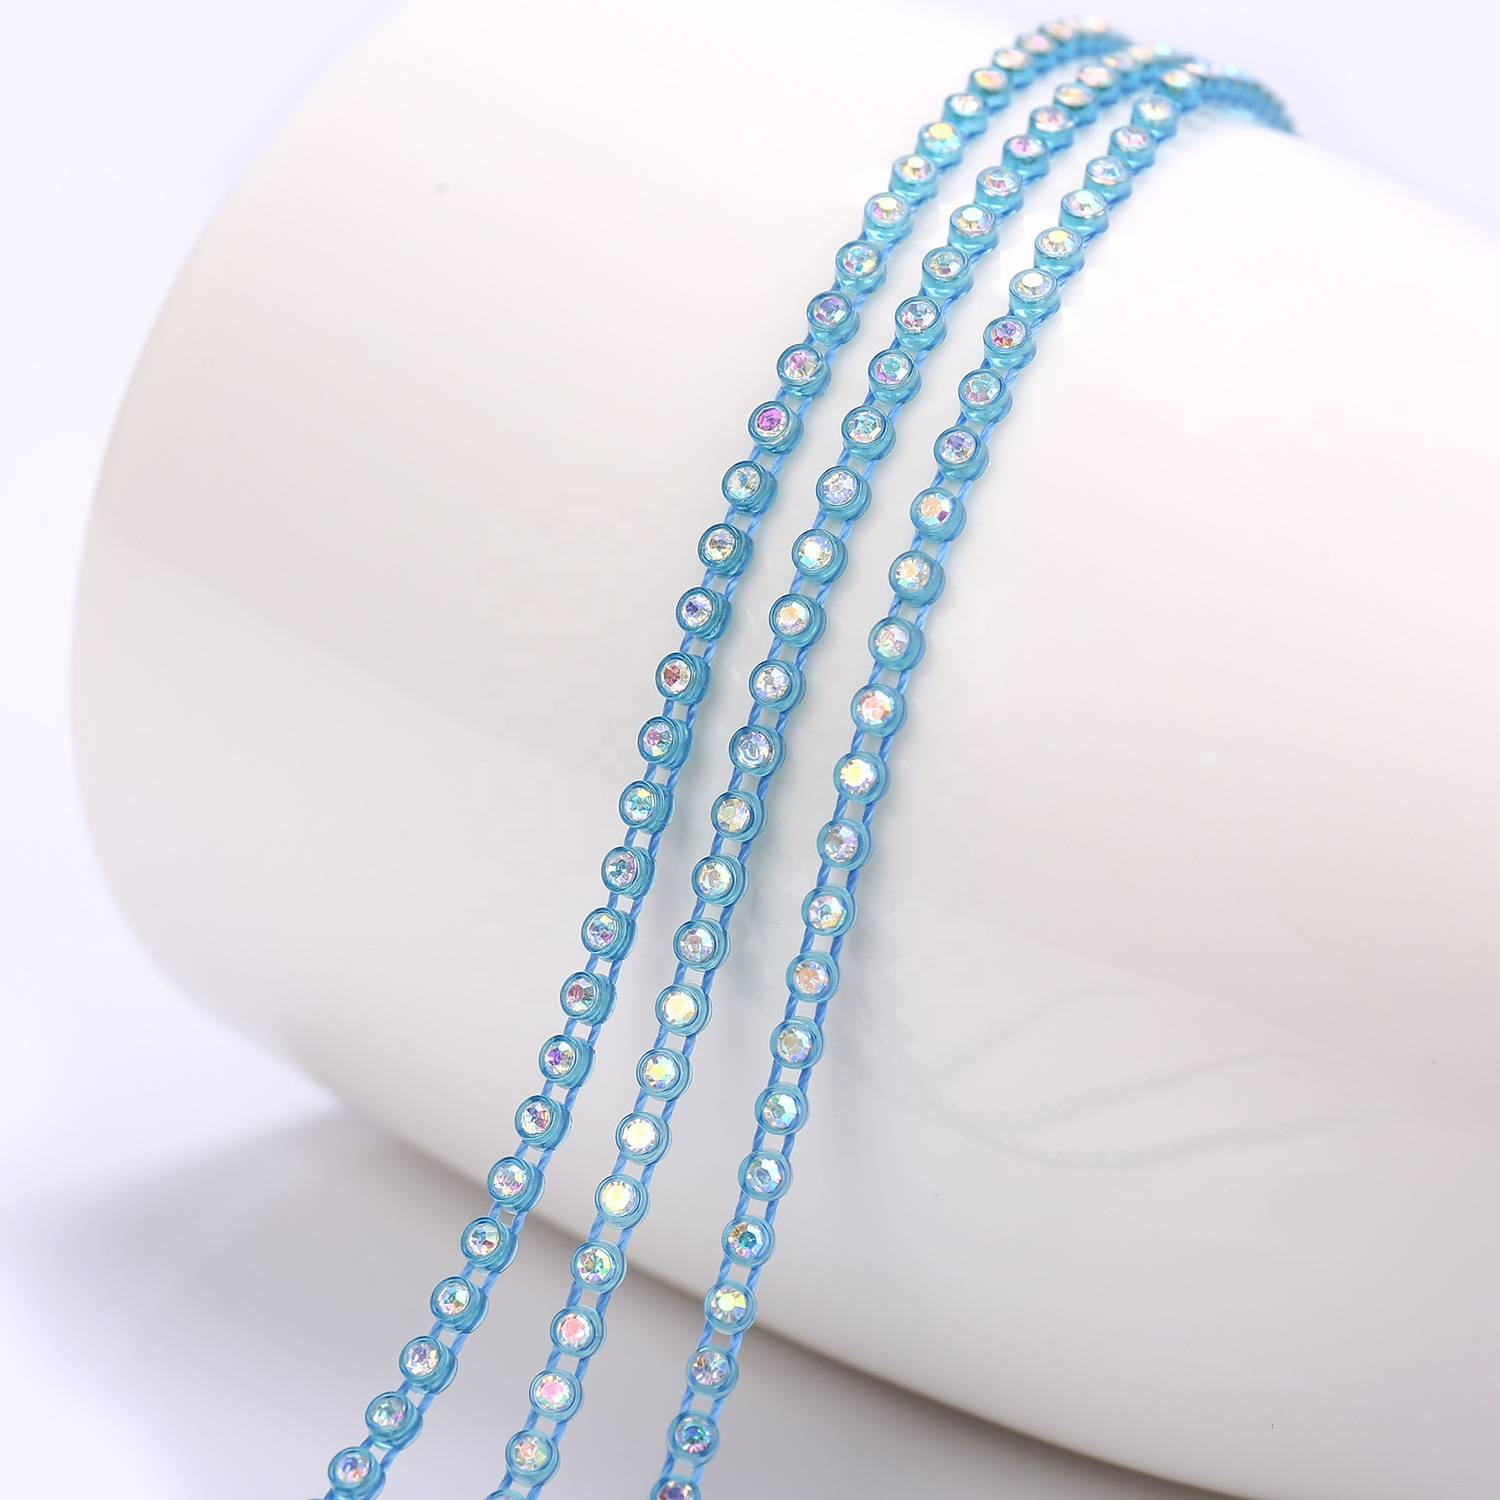 Wholesale rhinestone trim for clothes shinning accessories rhinestone trimming banding for folk dress